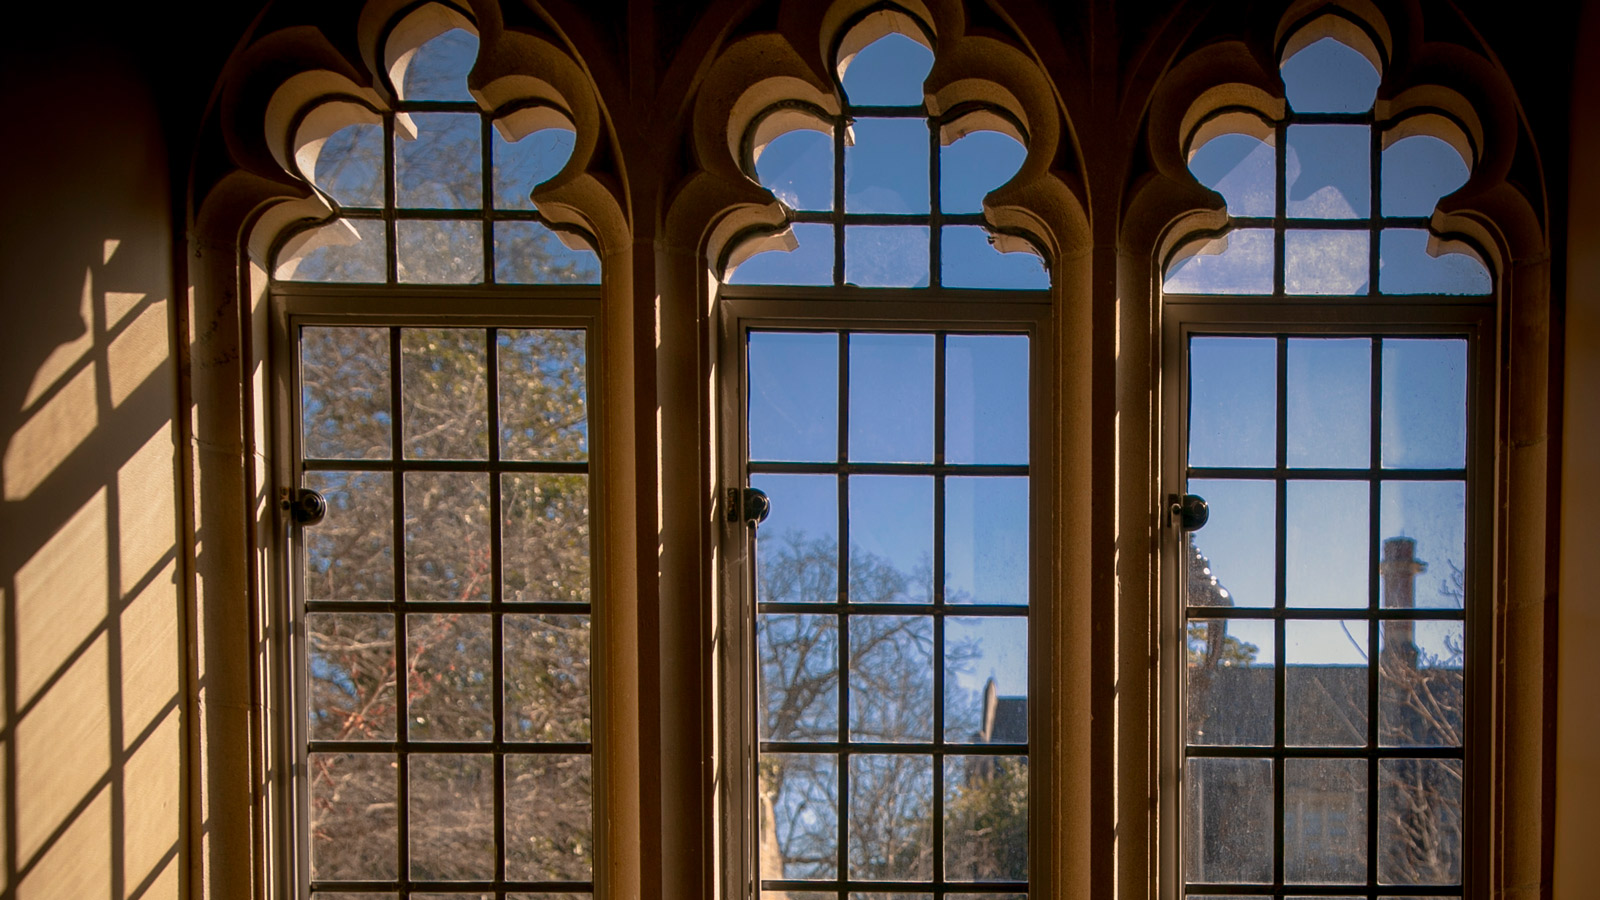 Image of gothic windows with sun shining in.